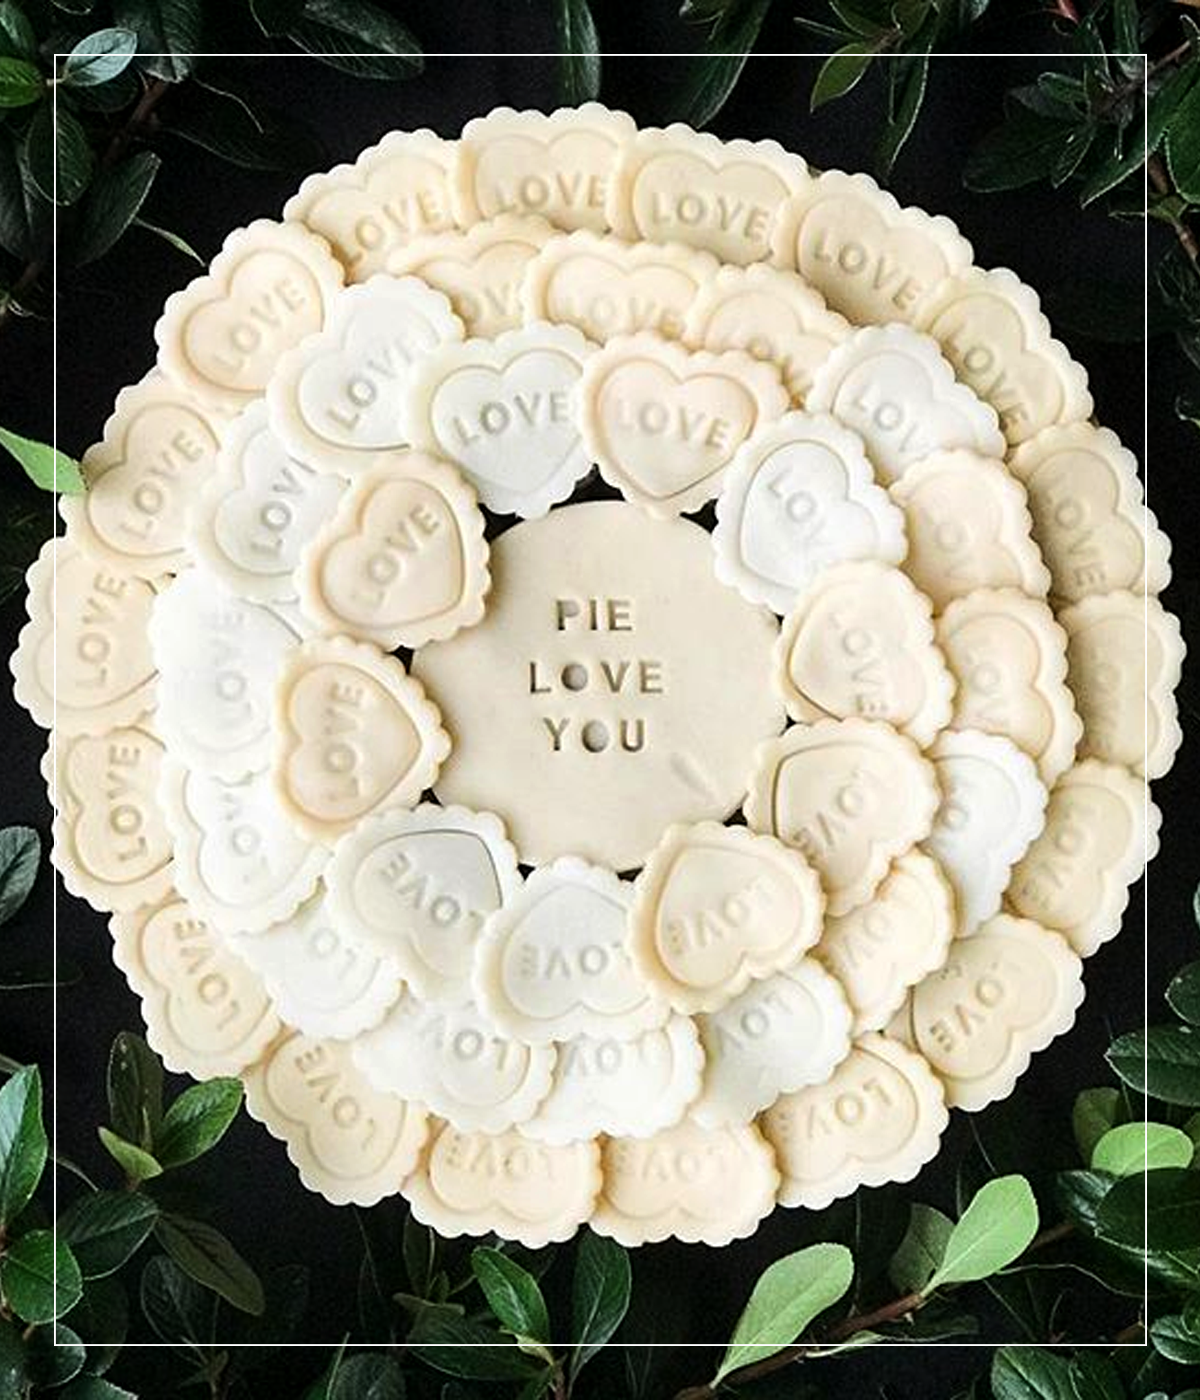 7 Valentine's Day Pie Crust Ideas | via Pies Before Guys